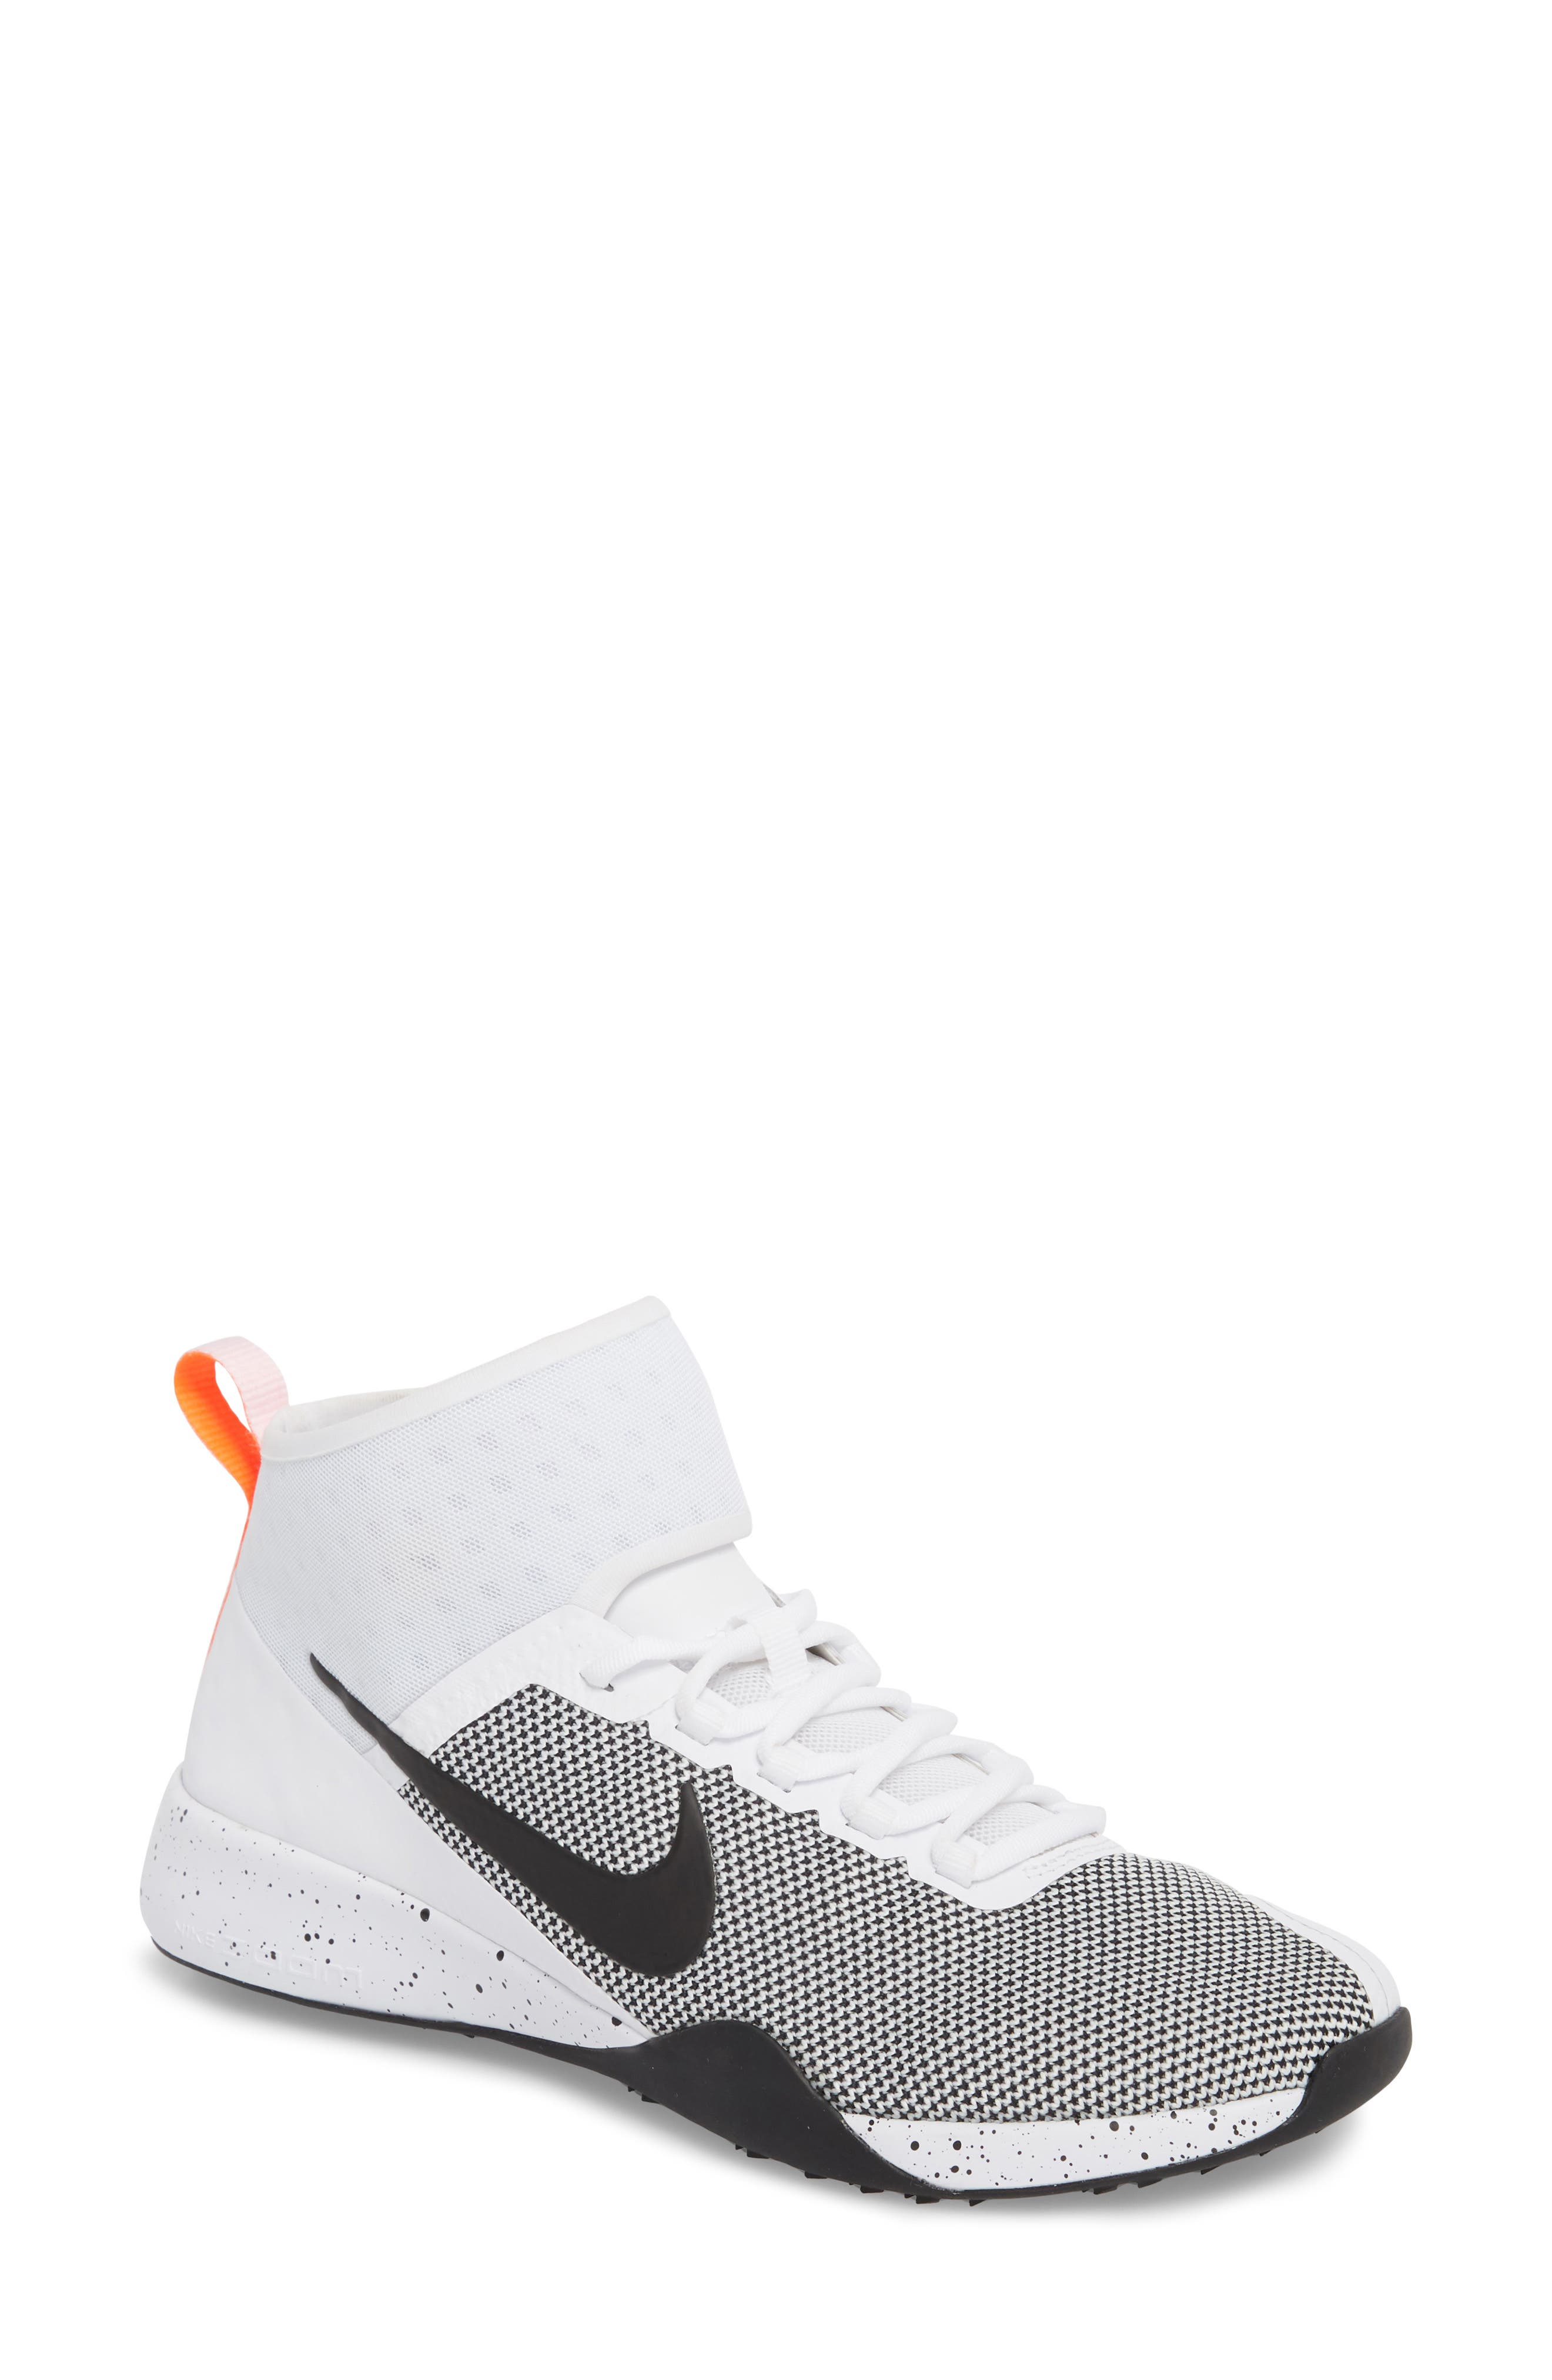 NikeLab Air Zoom Strong 2 Training Shoe,                         Main,                         color, White/ Black/ Total Crimson